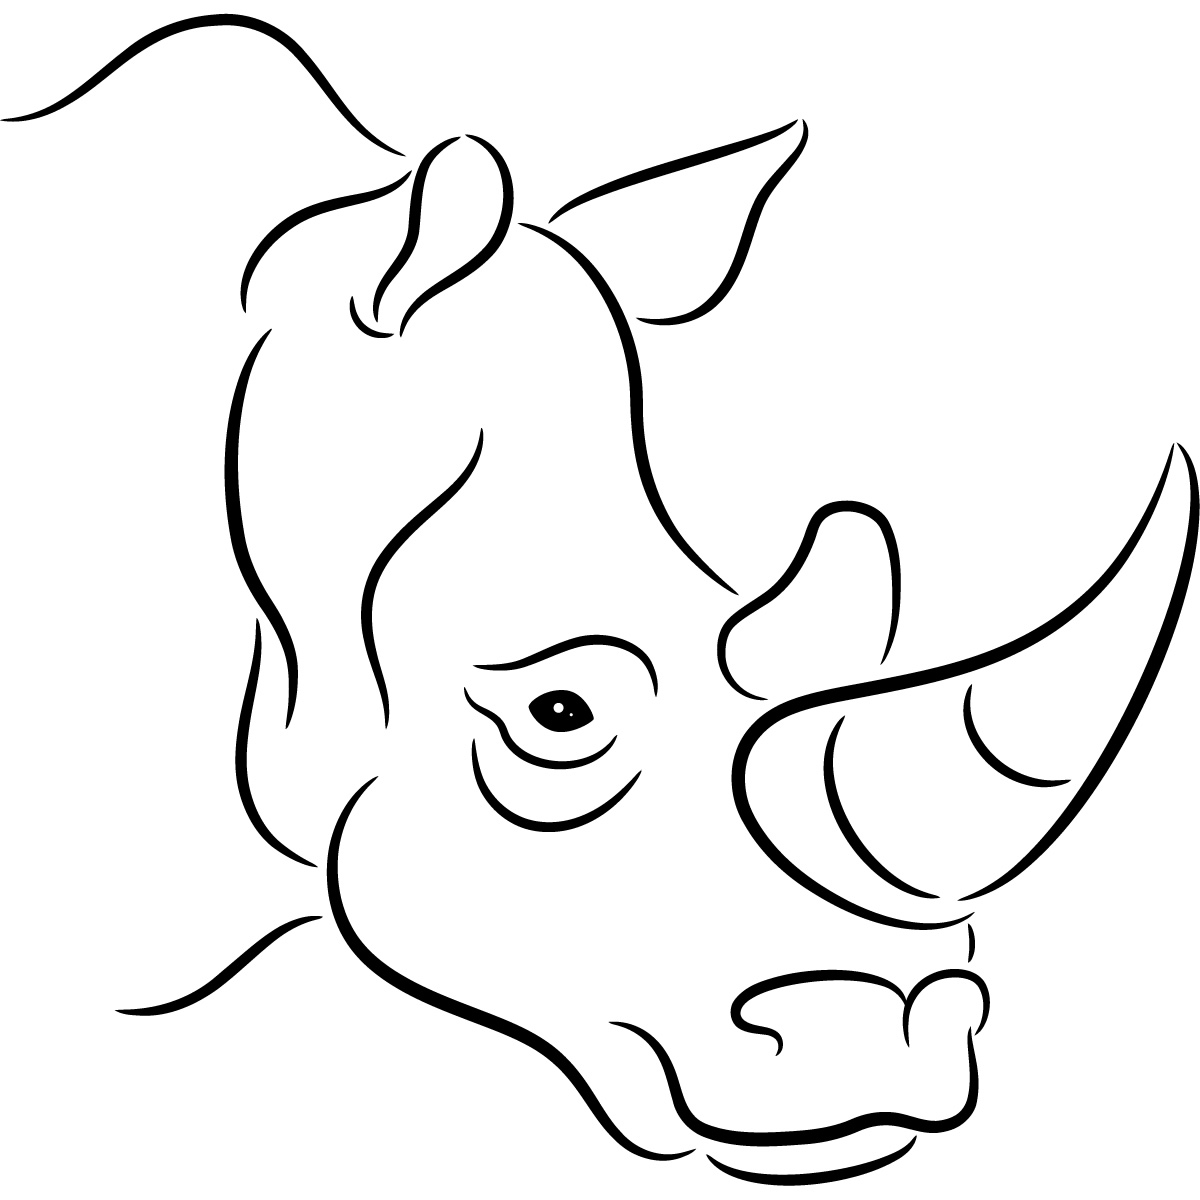 Detailed Line Drawings Of Animals : Outline of animals clipart best